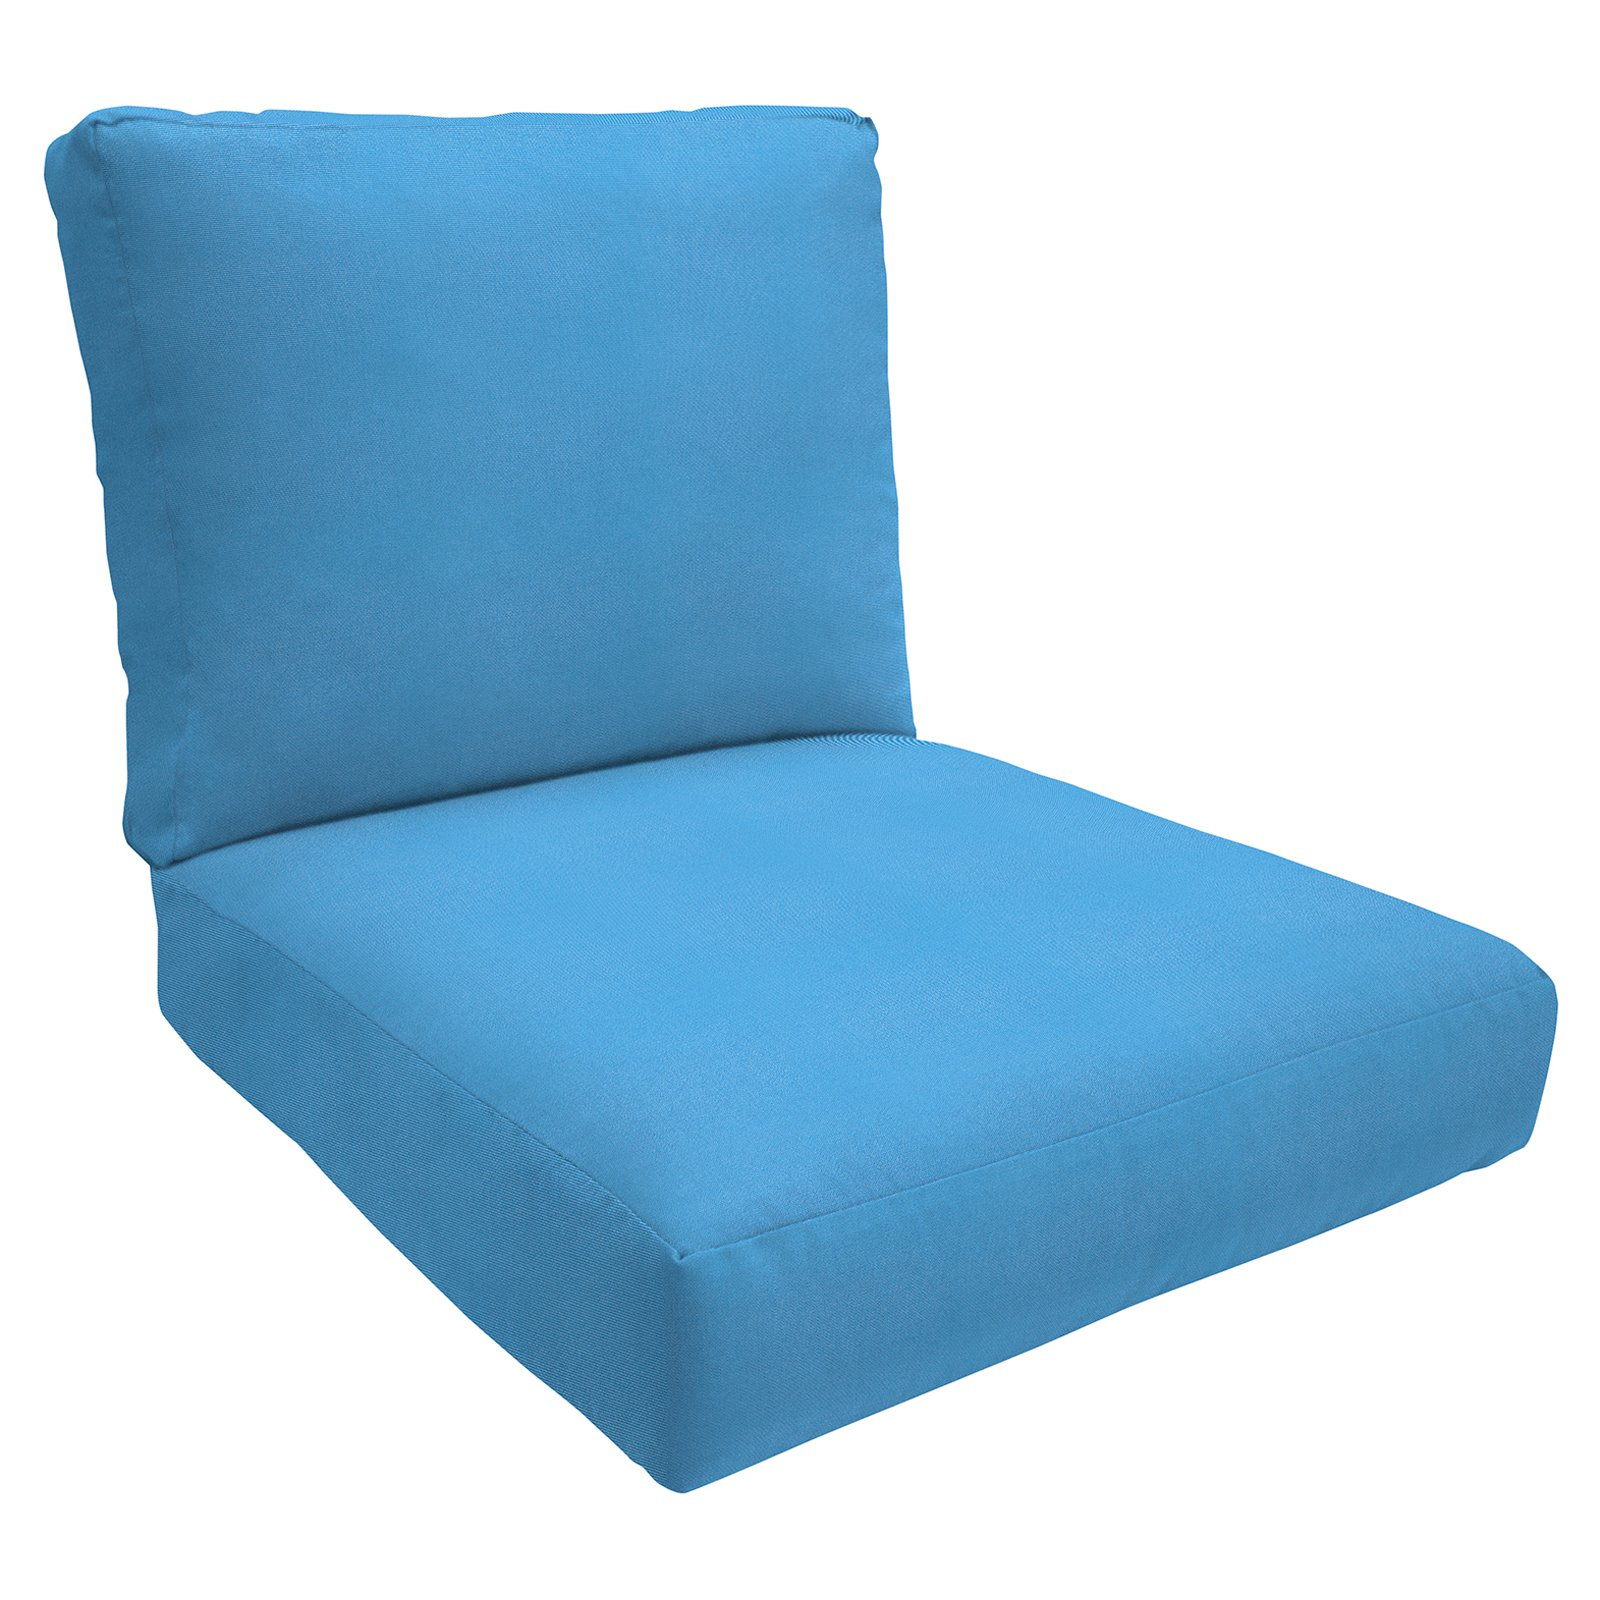 Patio Chair Cushions Sunbrella | Sunbrella Replacement Cushions | Sunbrella Seat Cushions